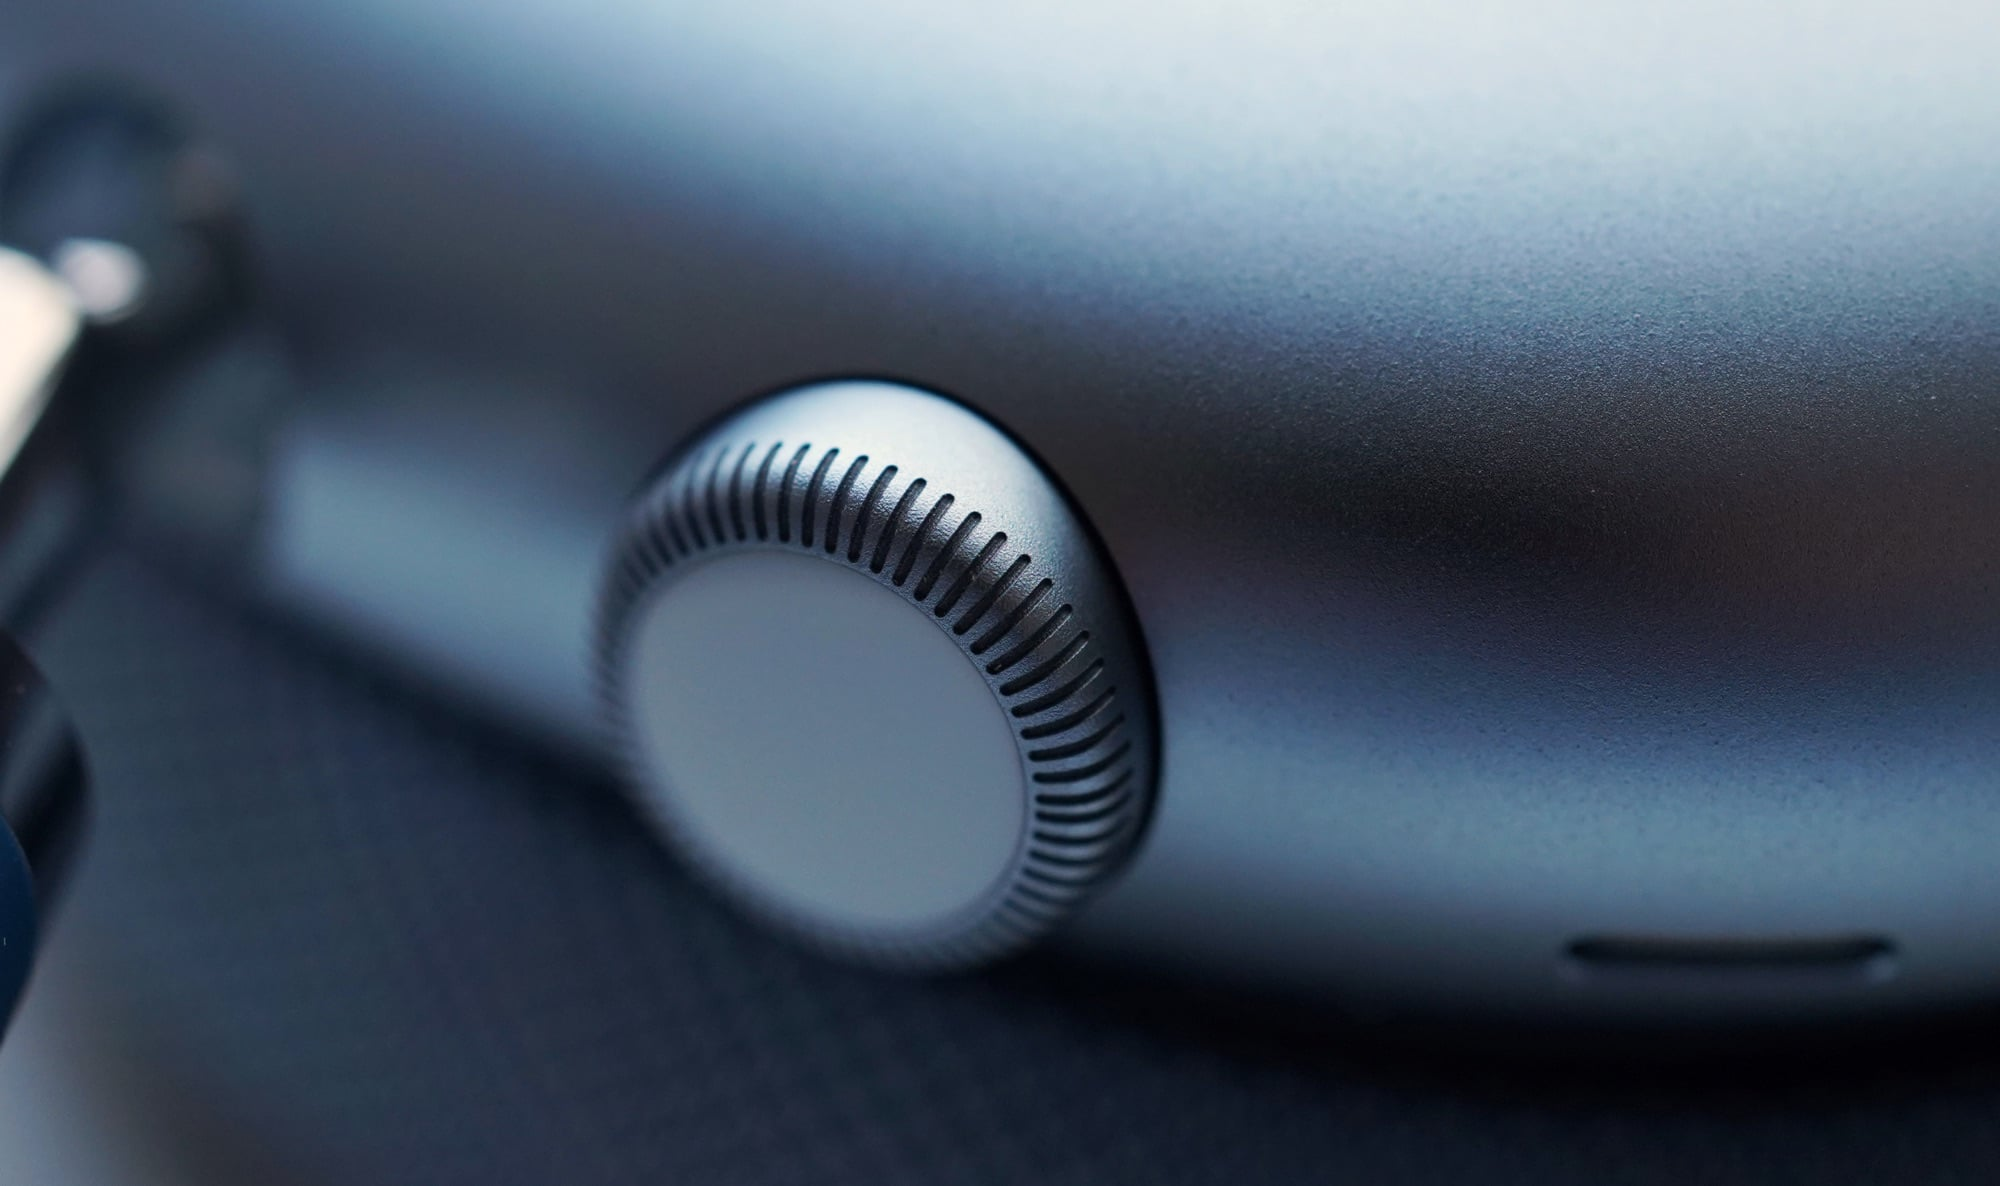 A close-up of the Digital Crown on the AirPods Max